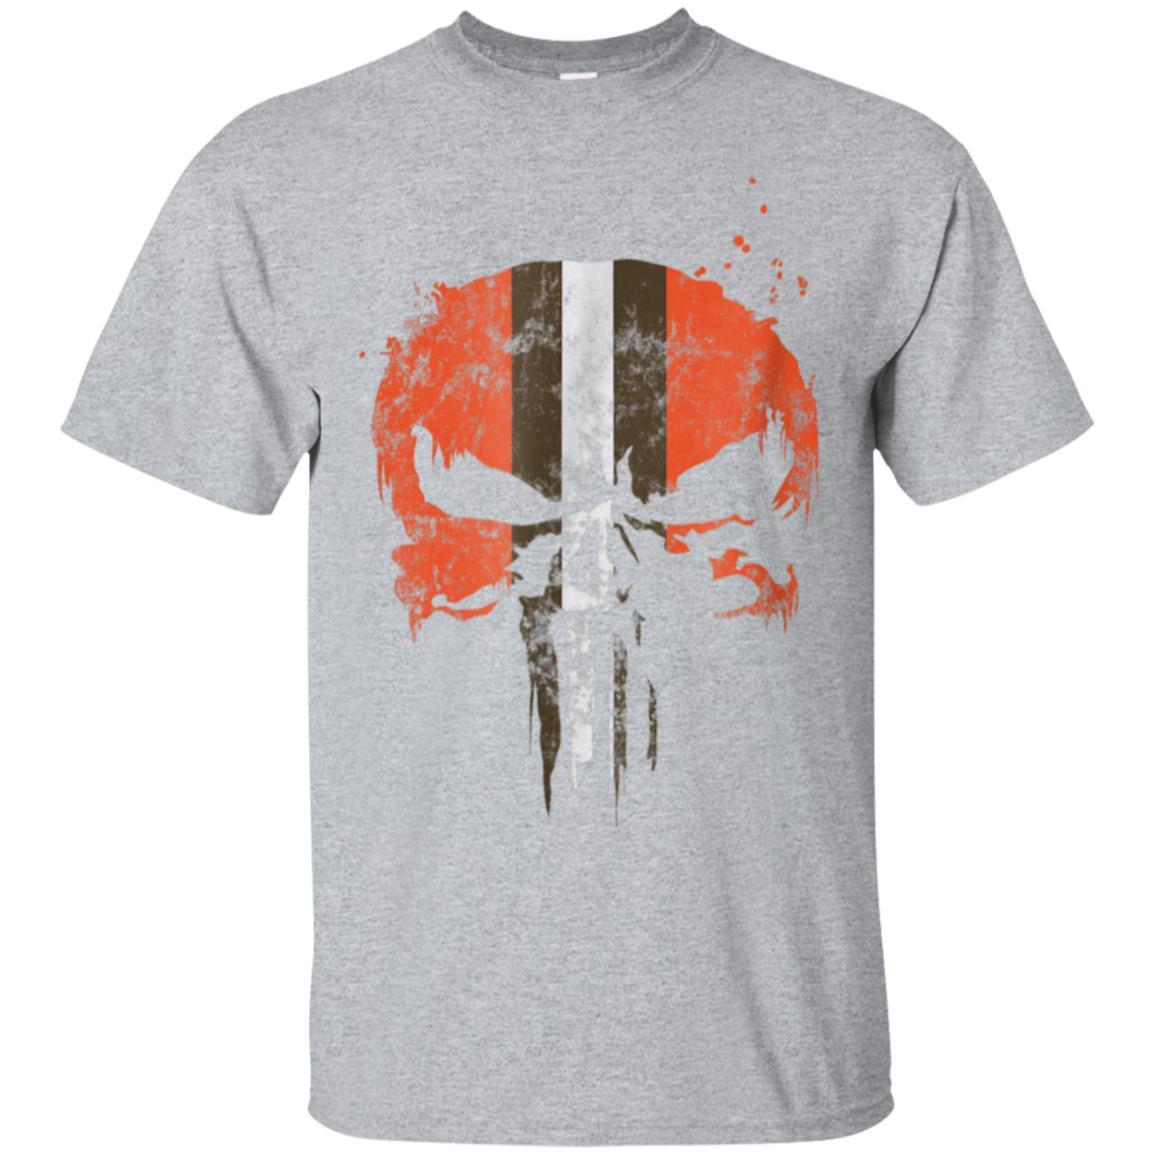 Football Helmet Skull Orange Brown & White T-Shirt 99promocode